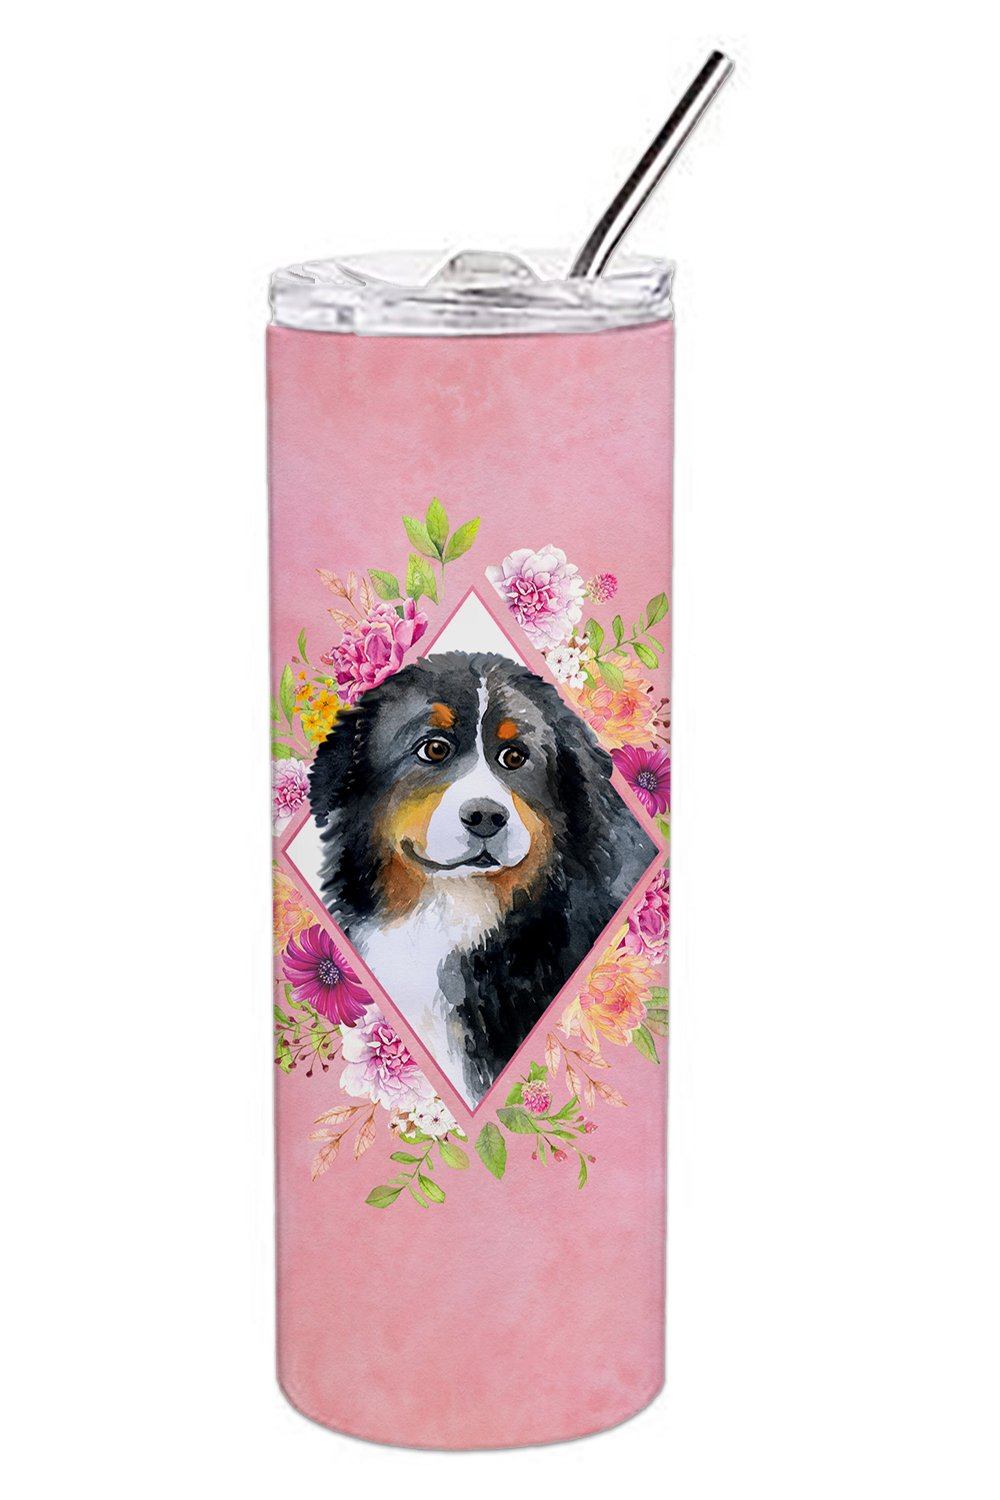 Bernese Mountain Dog Pink Flowers Double Walled Stainless Steel 20 oz Skinny Tumbler CK4118TBL20 by Caroline's Treasures